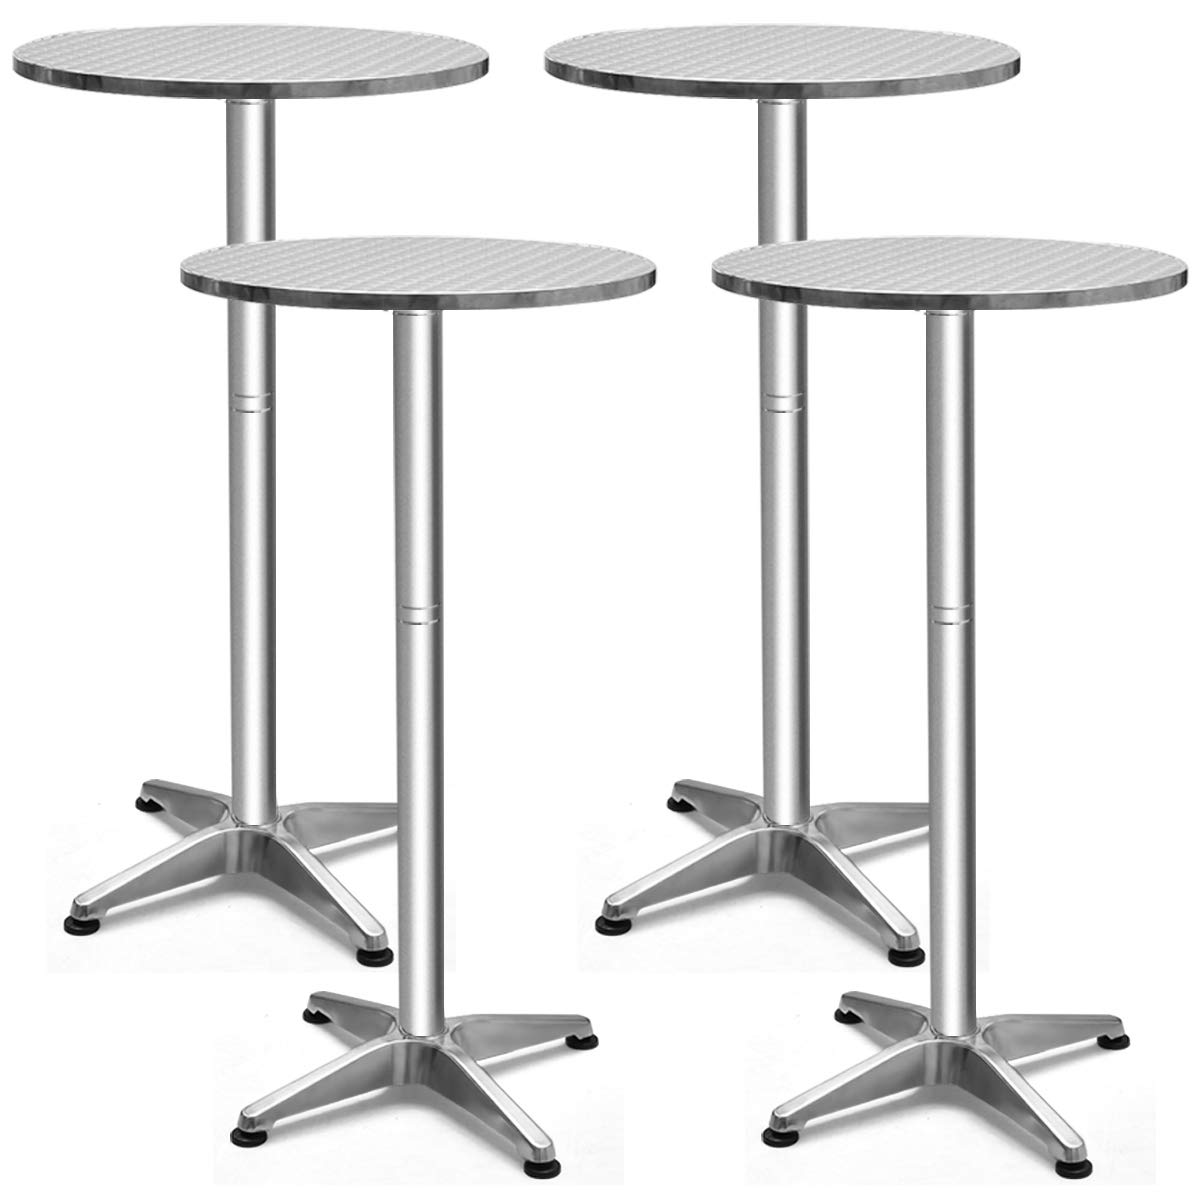 Giantex Bistro Bar Table Aluminium Round Folding Table W/Two Height Adjust Table (4)